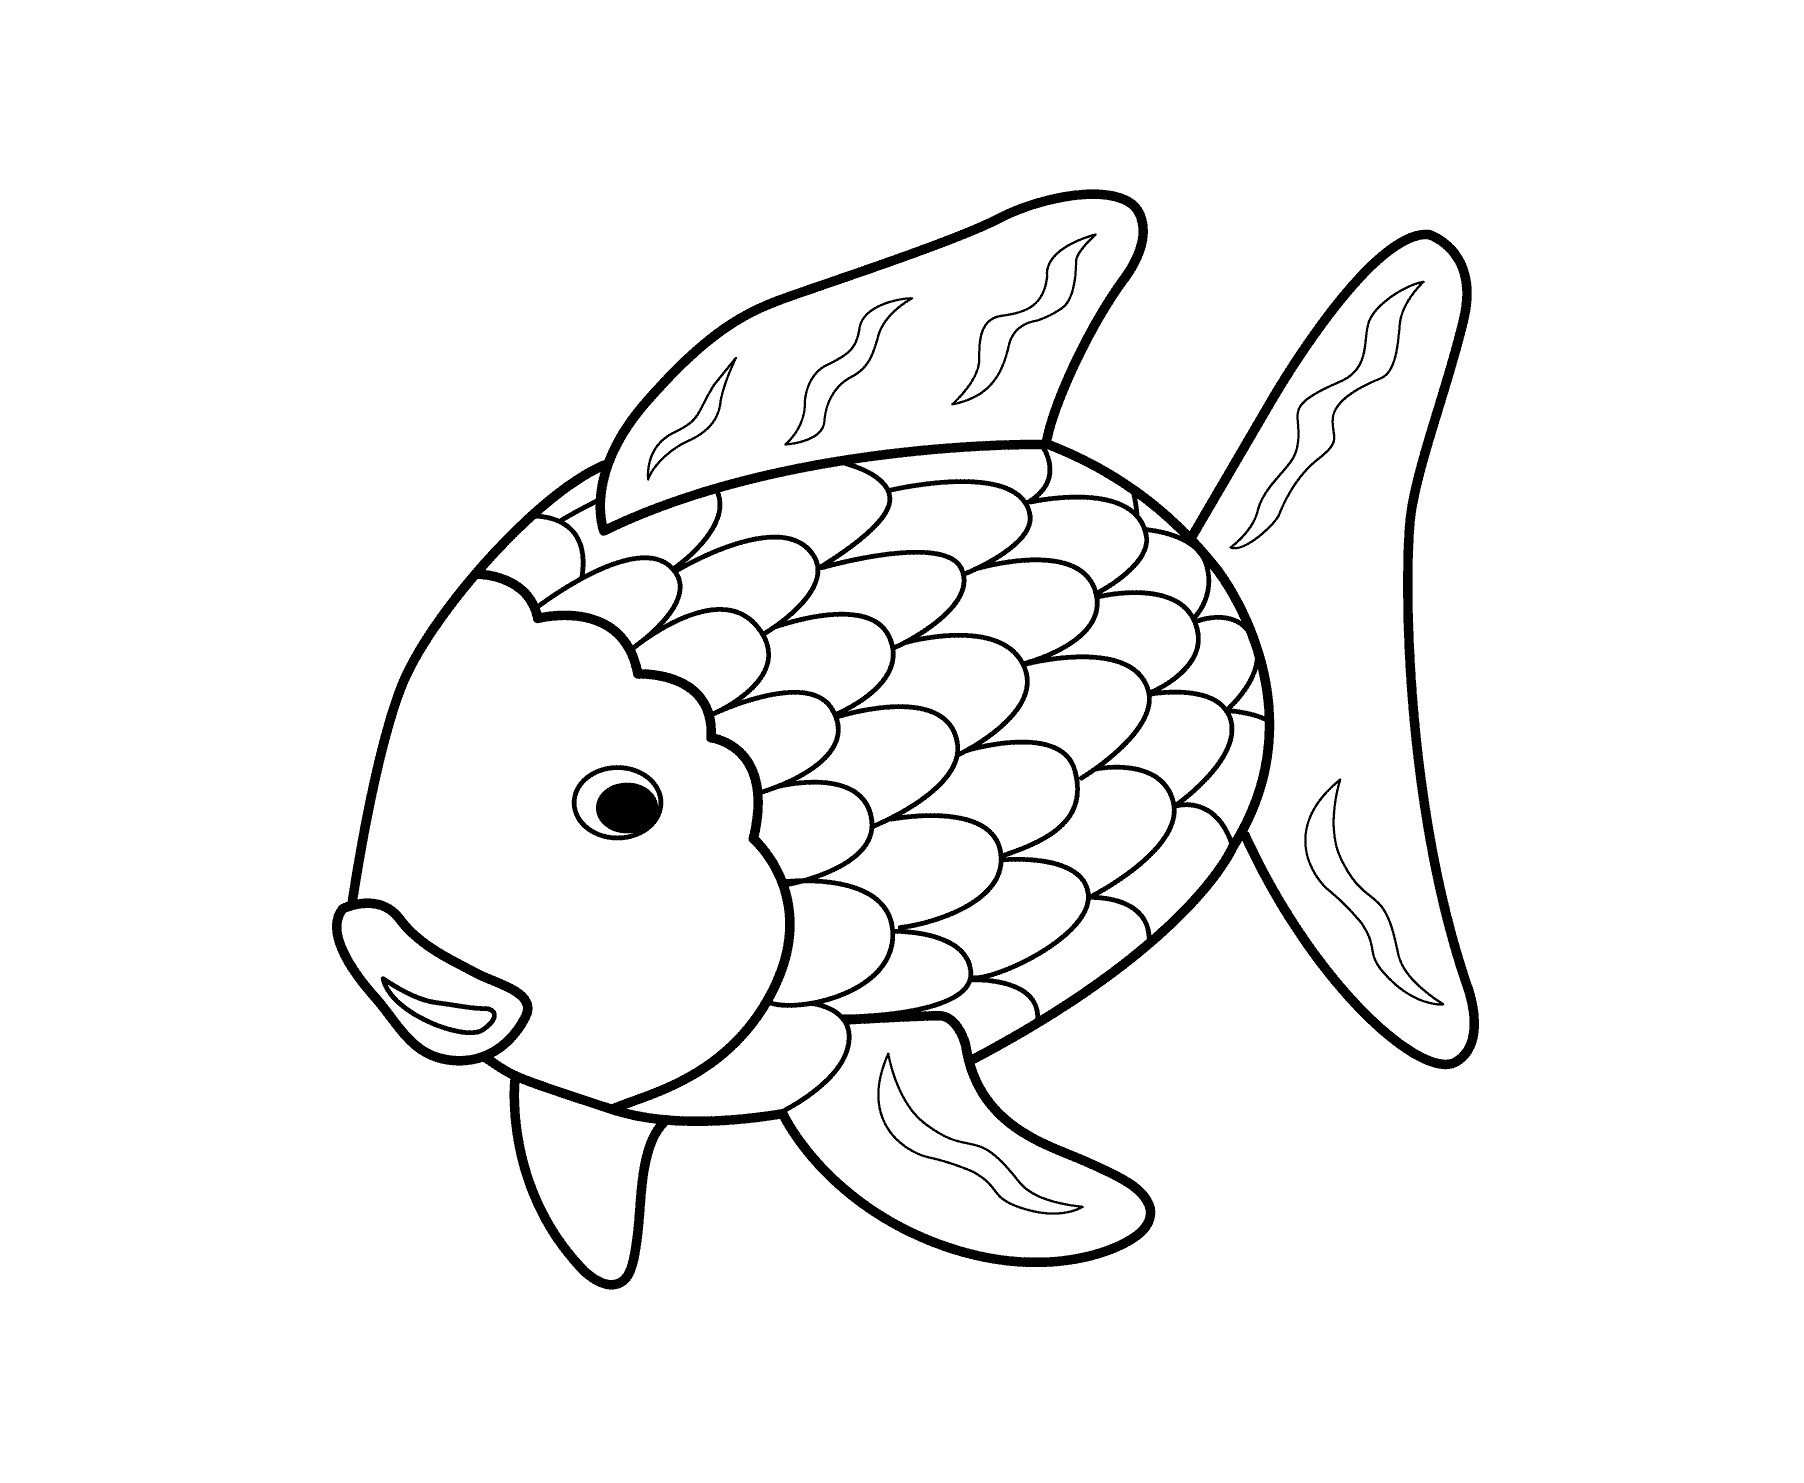 26 Saltwater Fish Coloring Pages Collection - Coloring Sheets